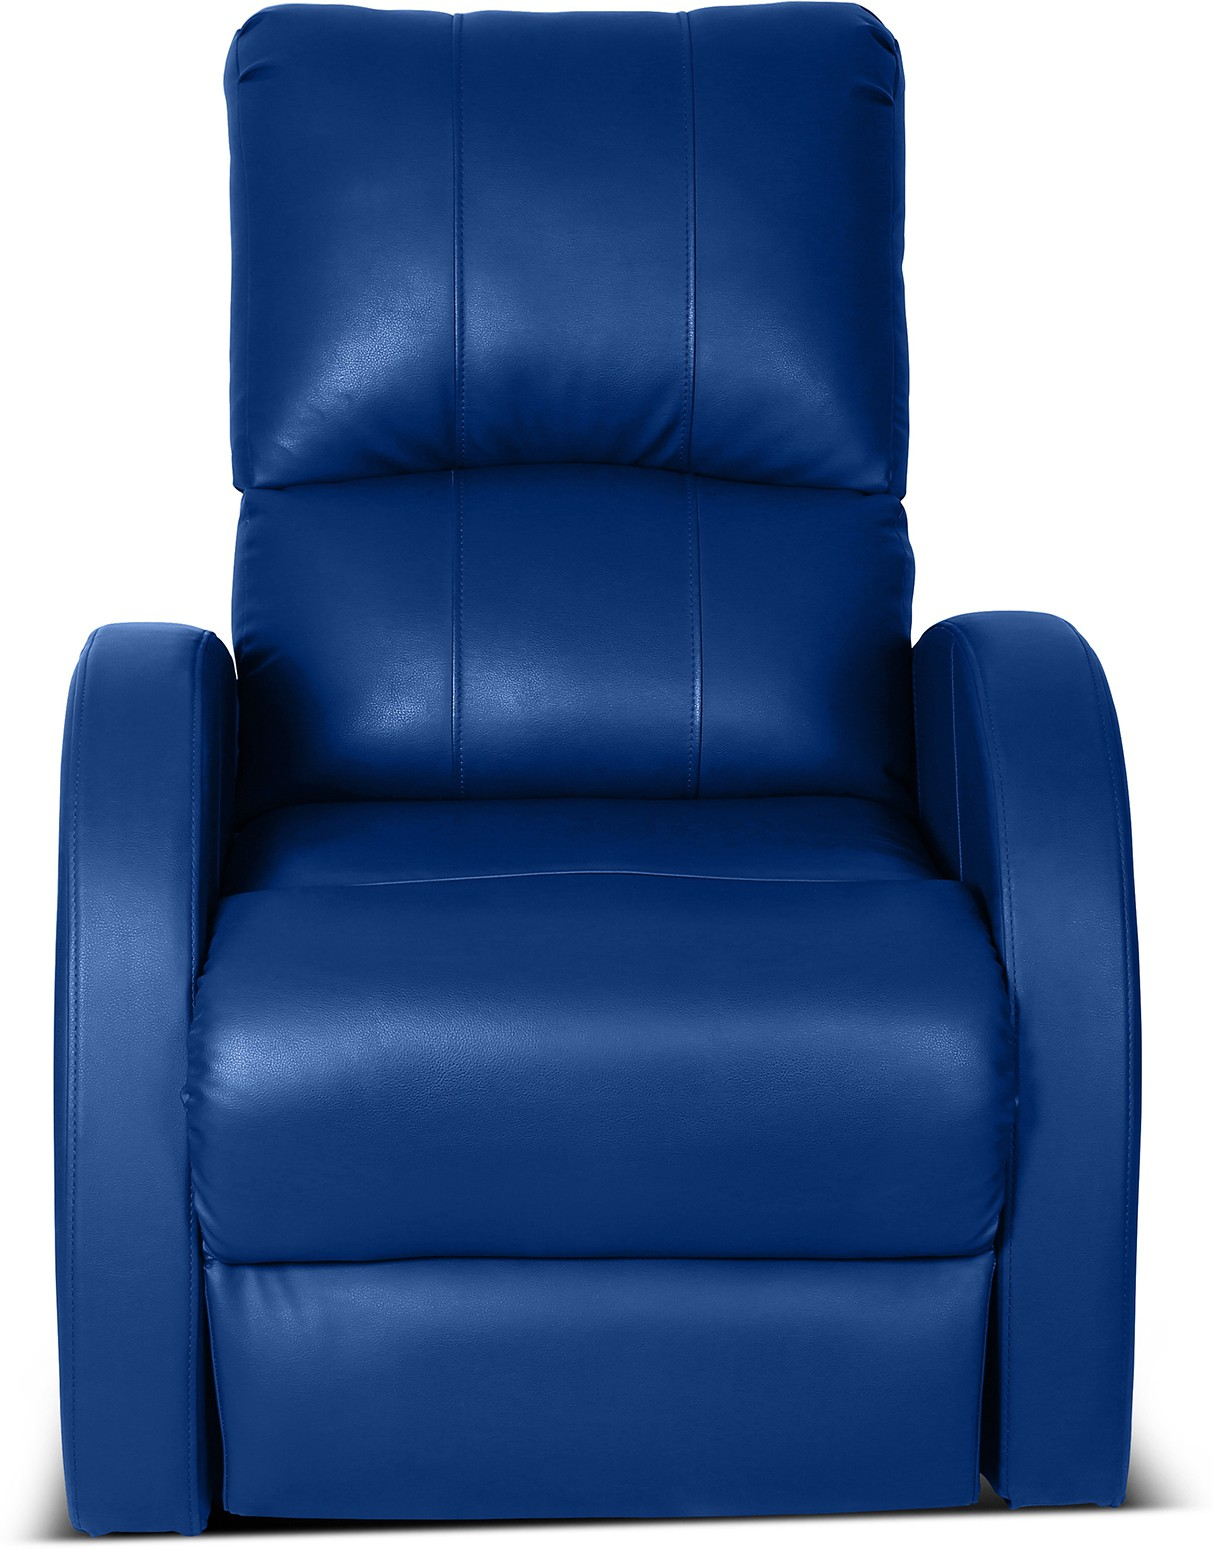 View Little Nap Recliners Leatherette Manual Recliners(Finish Color - Blue) Furniture (Little Nap Recliners)